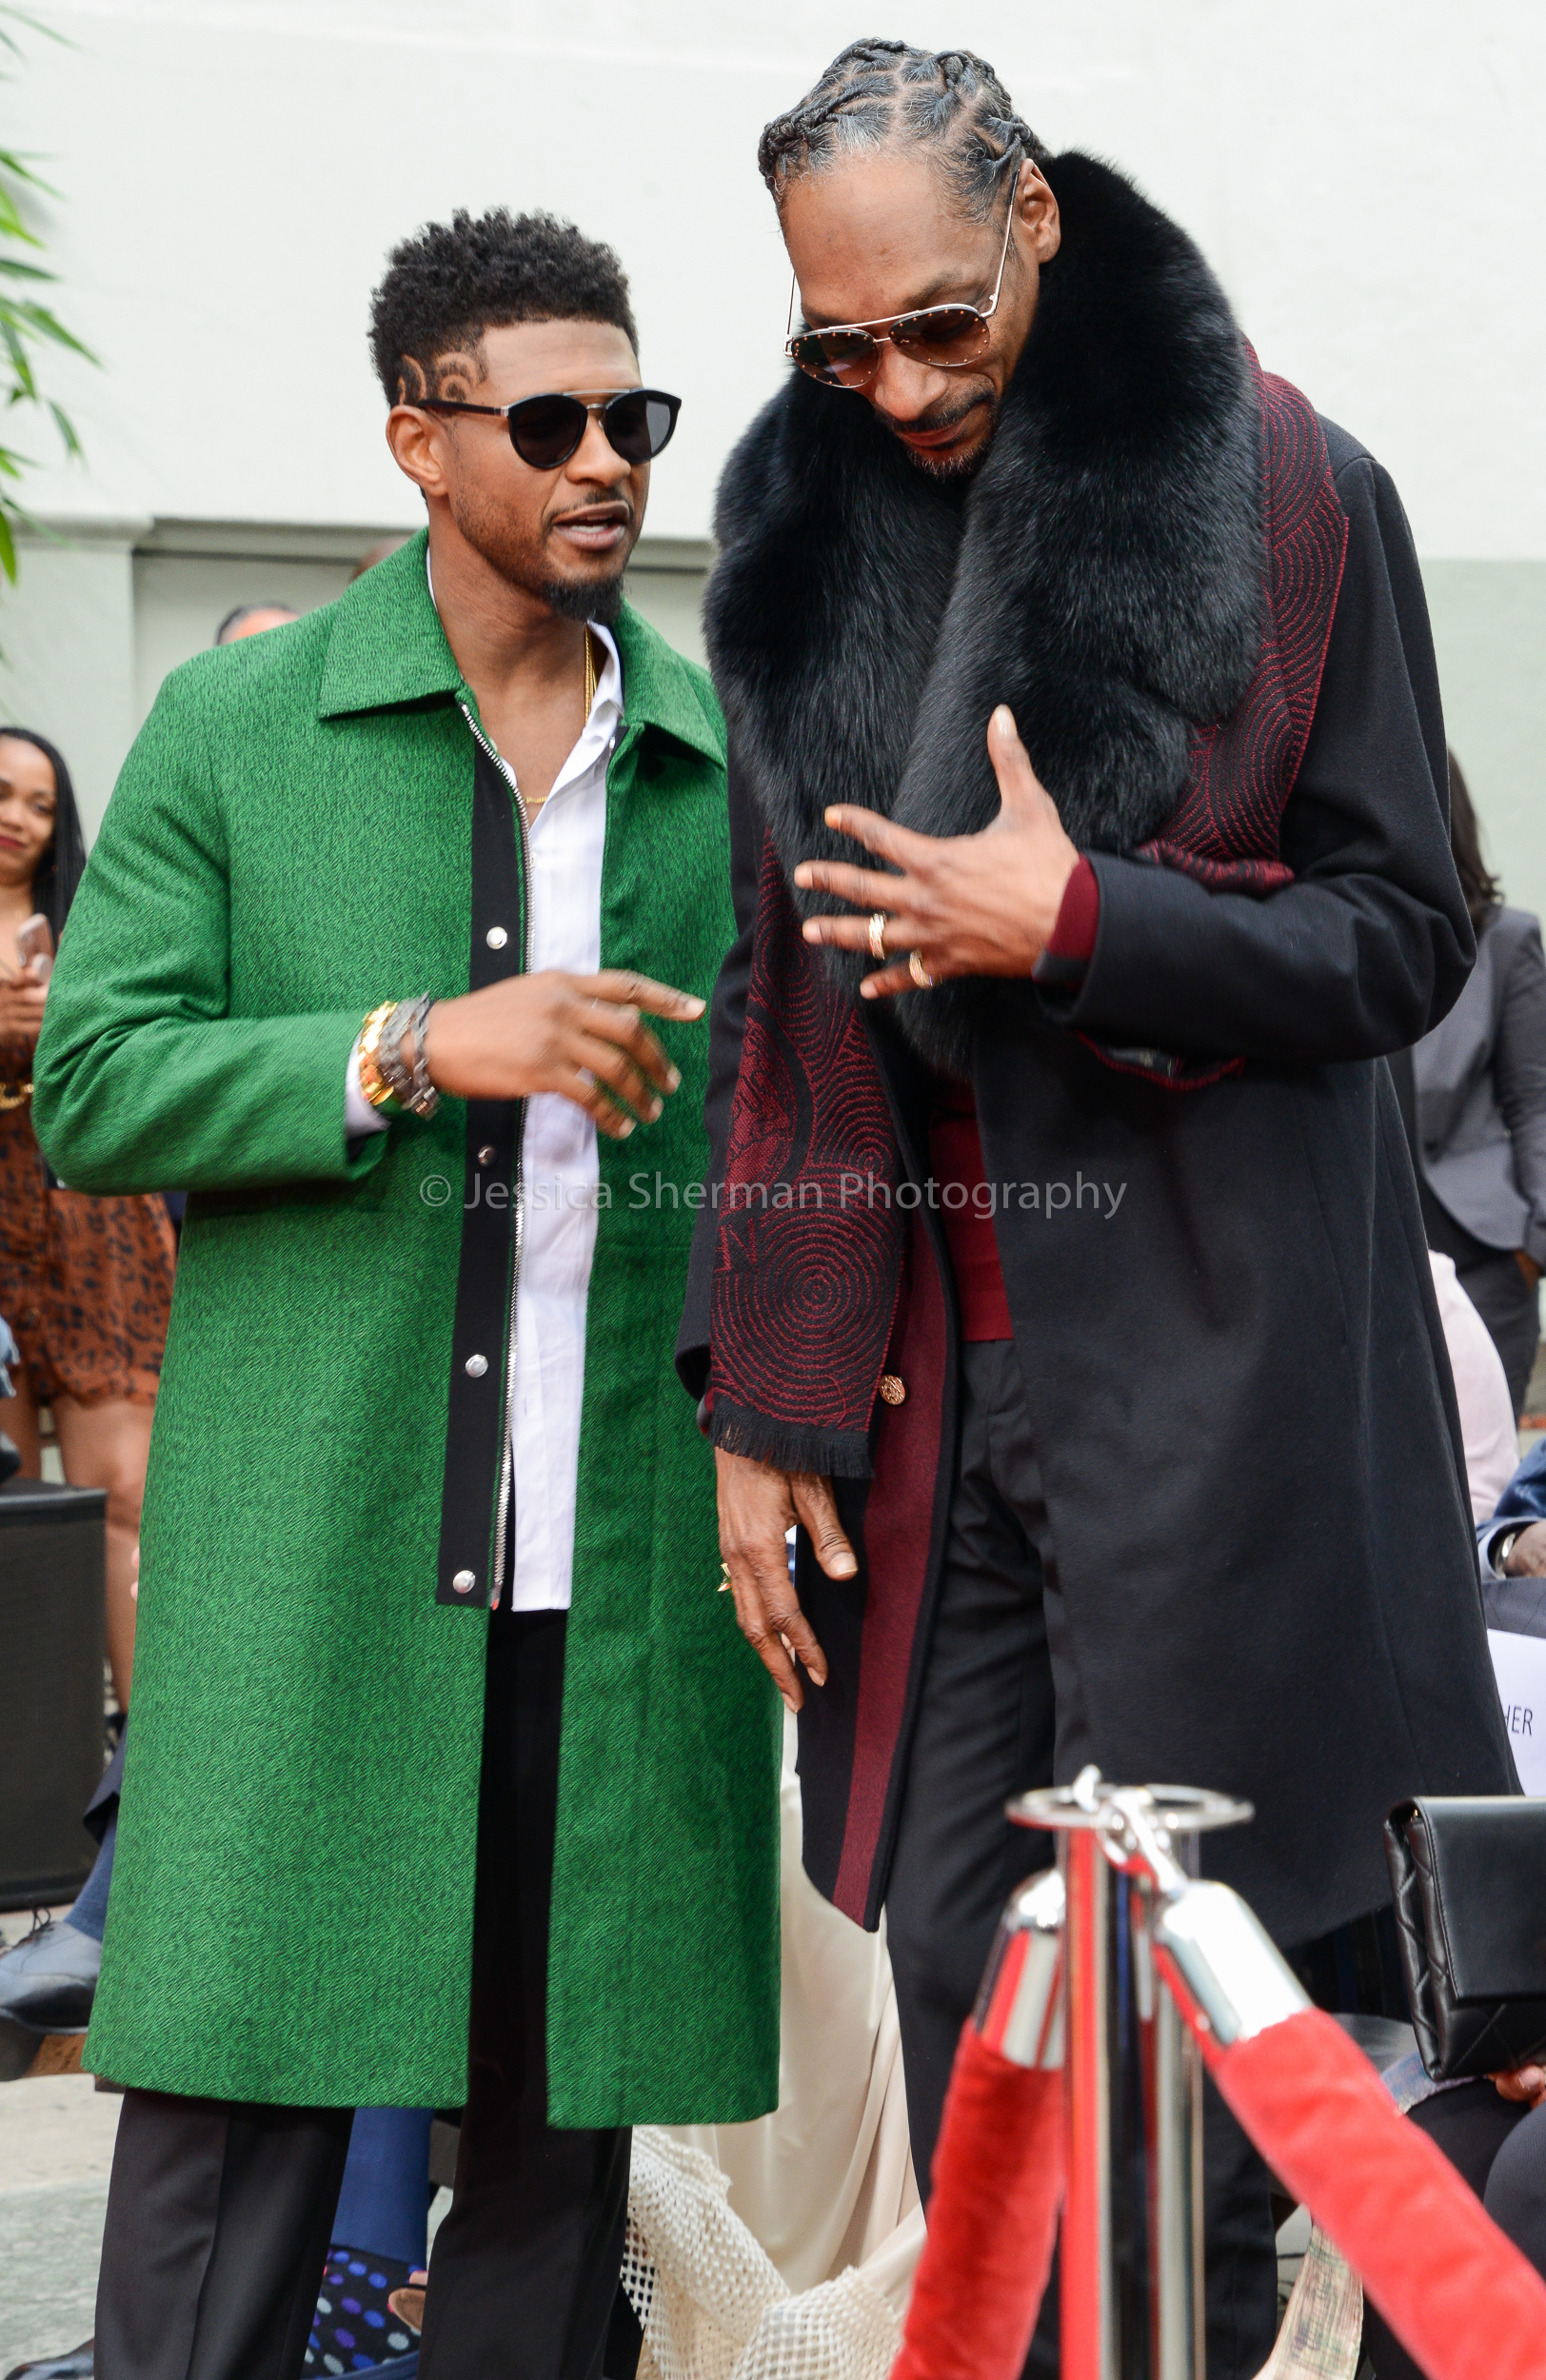 Usher-Snoop-Dogg-Jessica-Sherman-0969.jpg